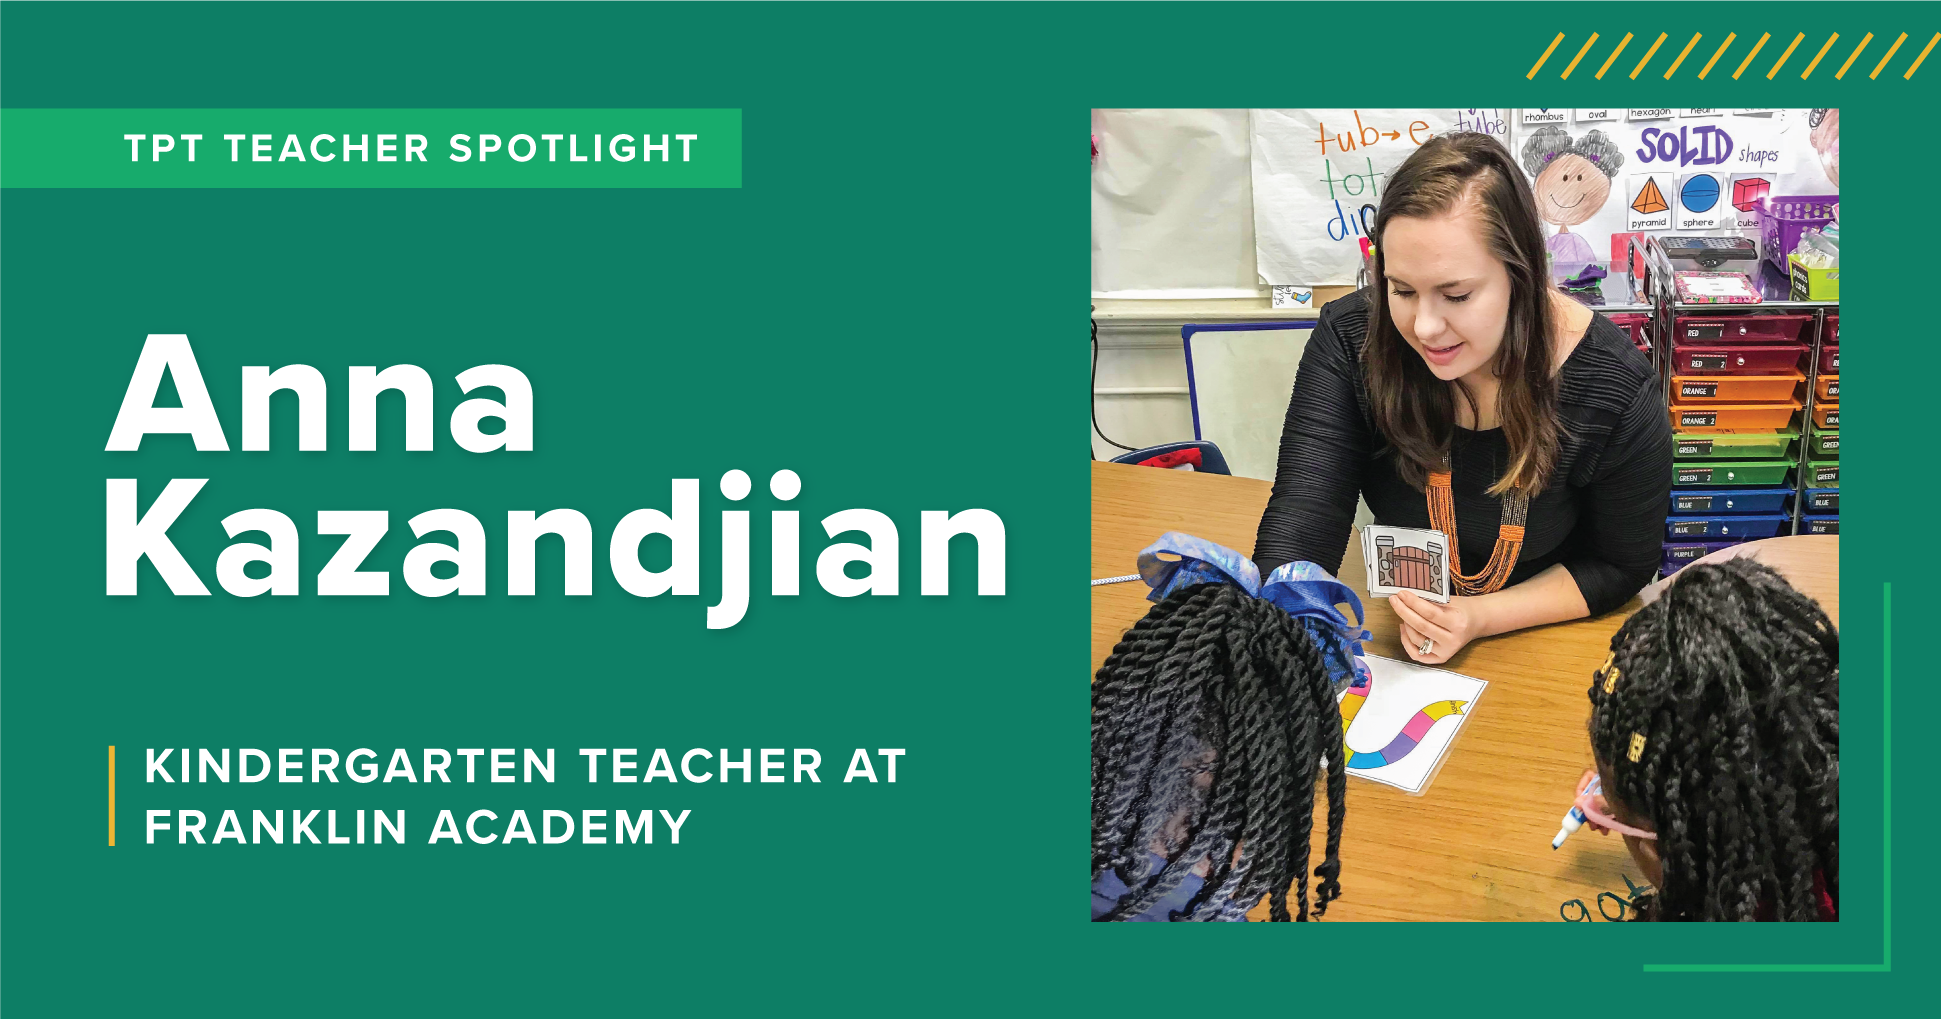 A TpT Teacher Spotlight on Anna Kazandjian, a Kindergarten teacher at Franklin Academy.